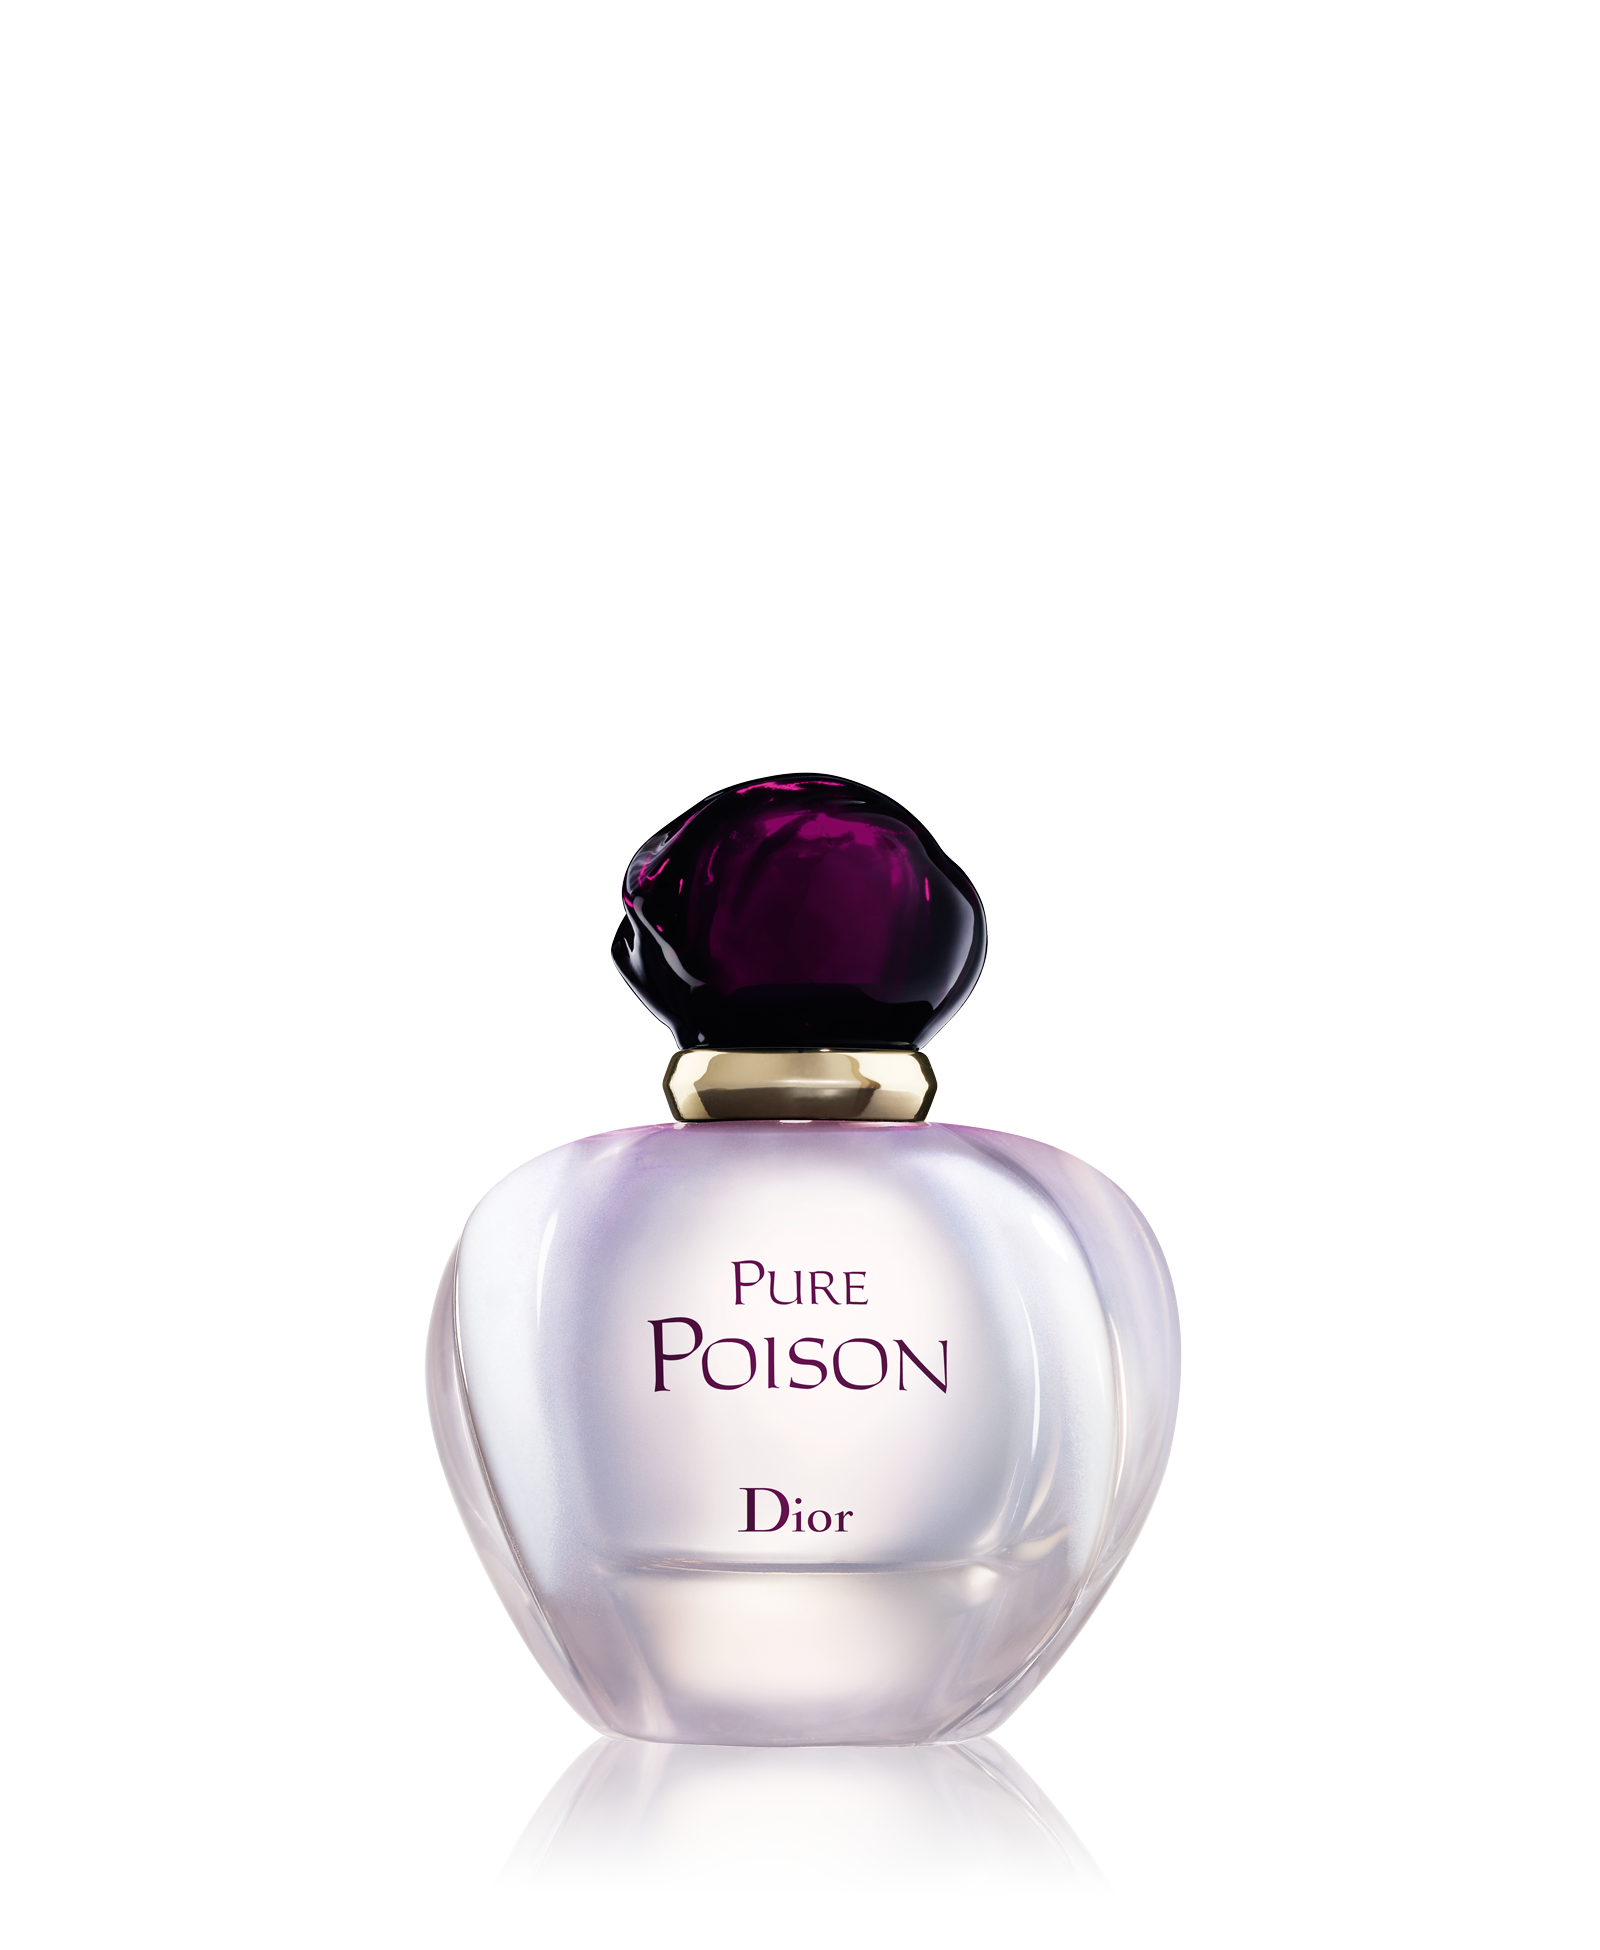 Pure Poison Eau De Parfum On Dior Beauty Website Perfume Dior